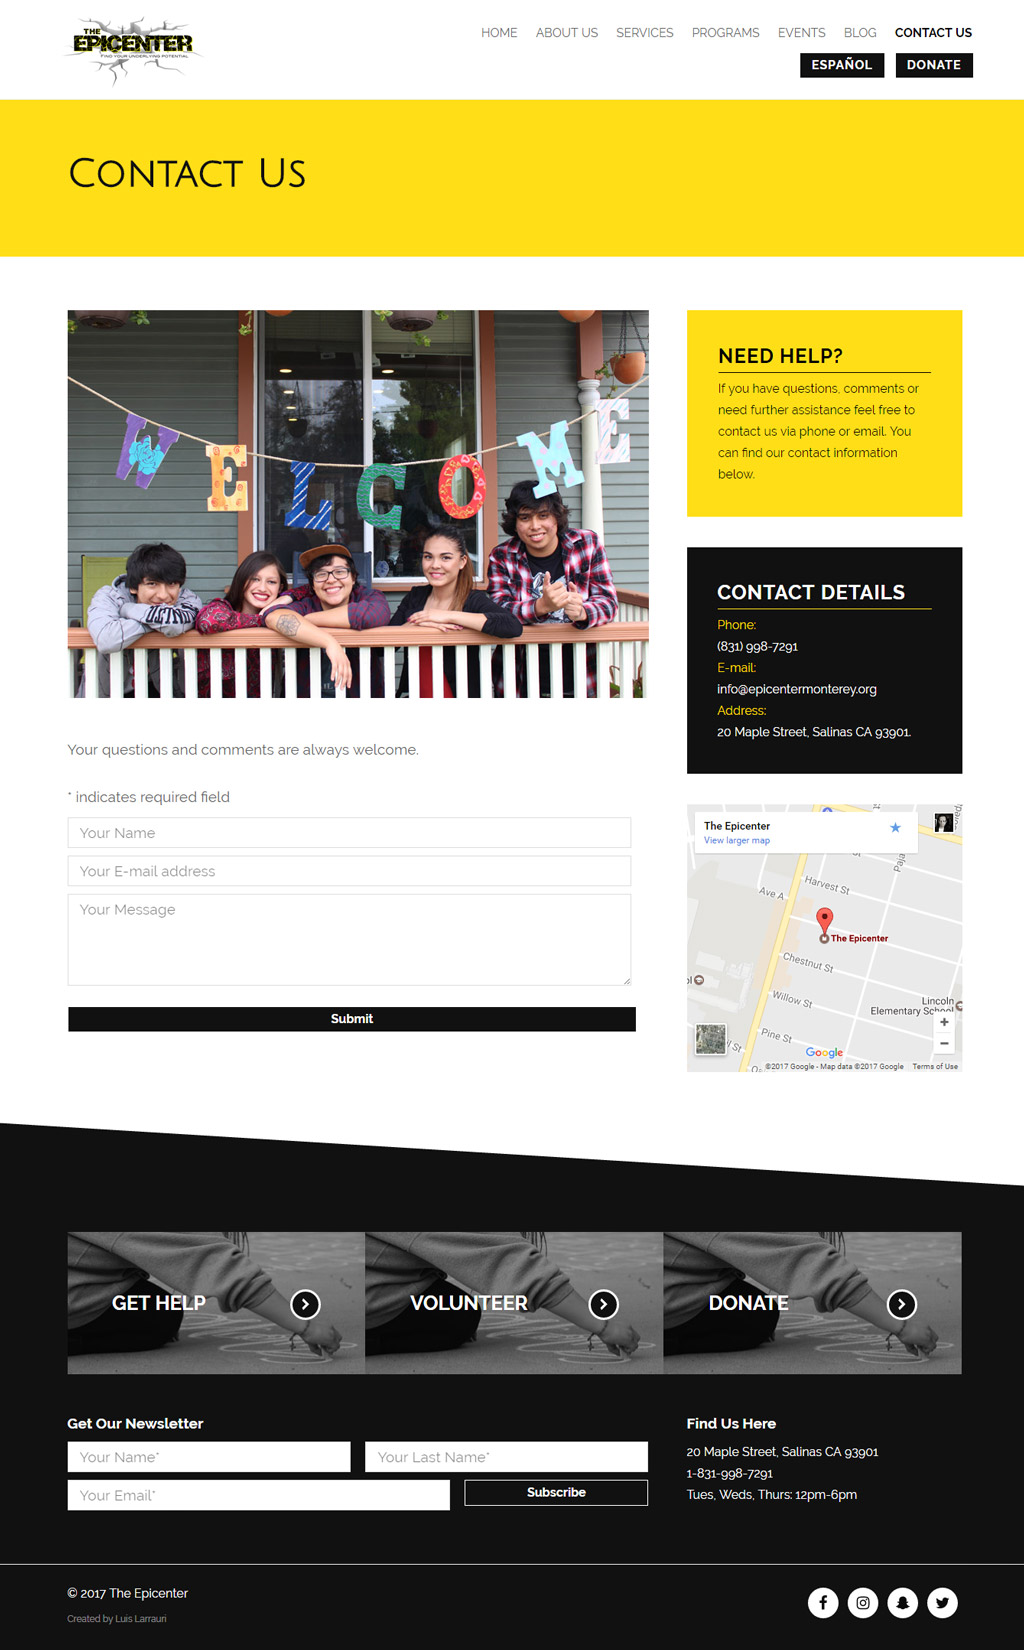 The Epicenter Monterey Contact Page Design